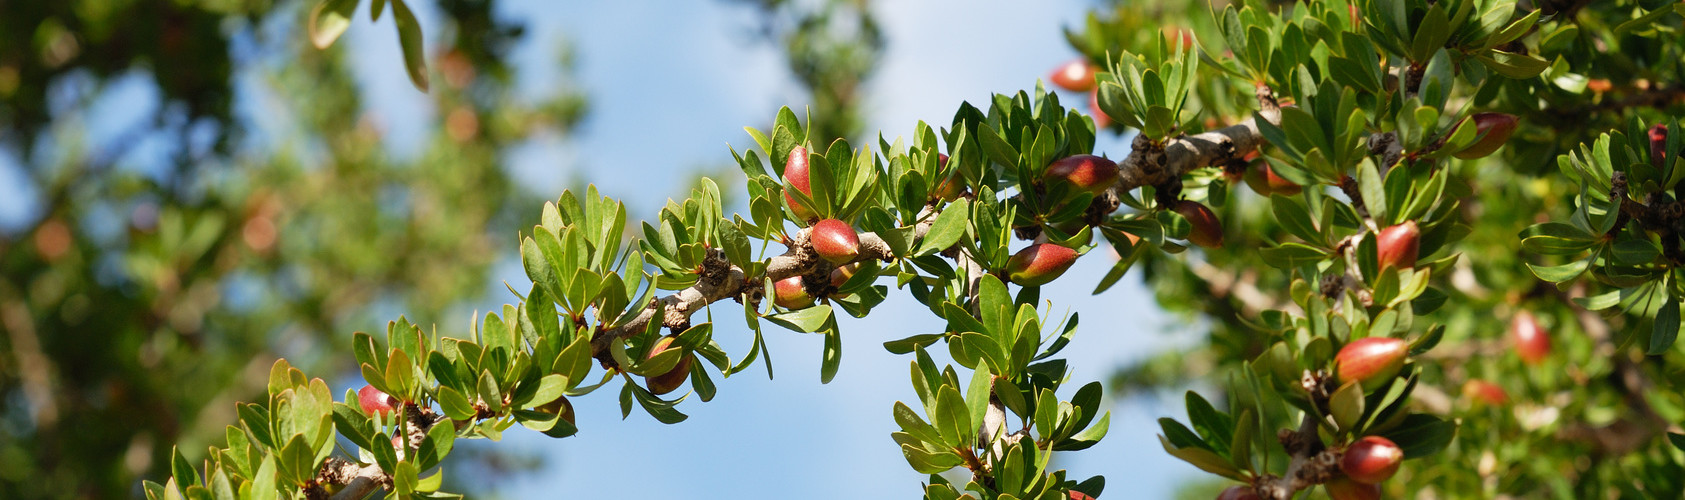 Argan fruit branch